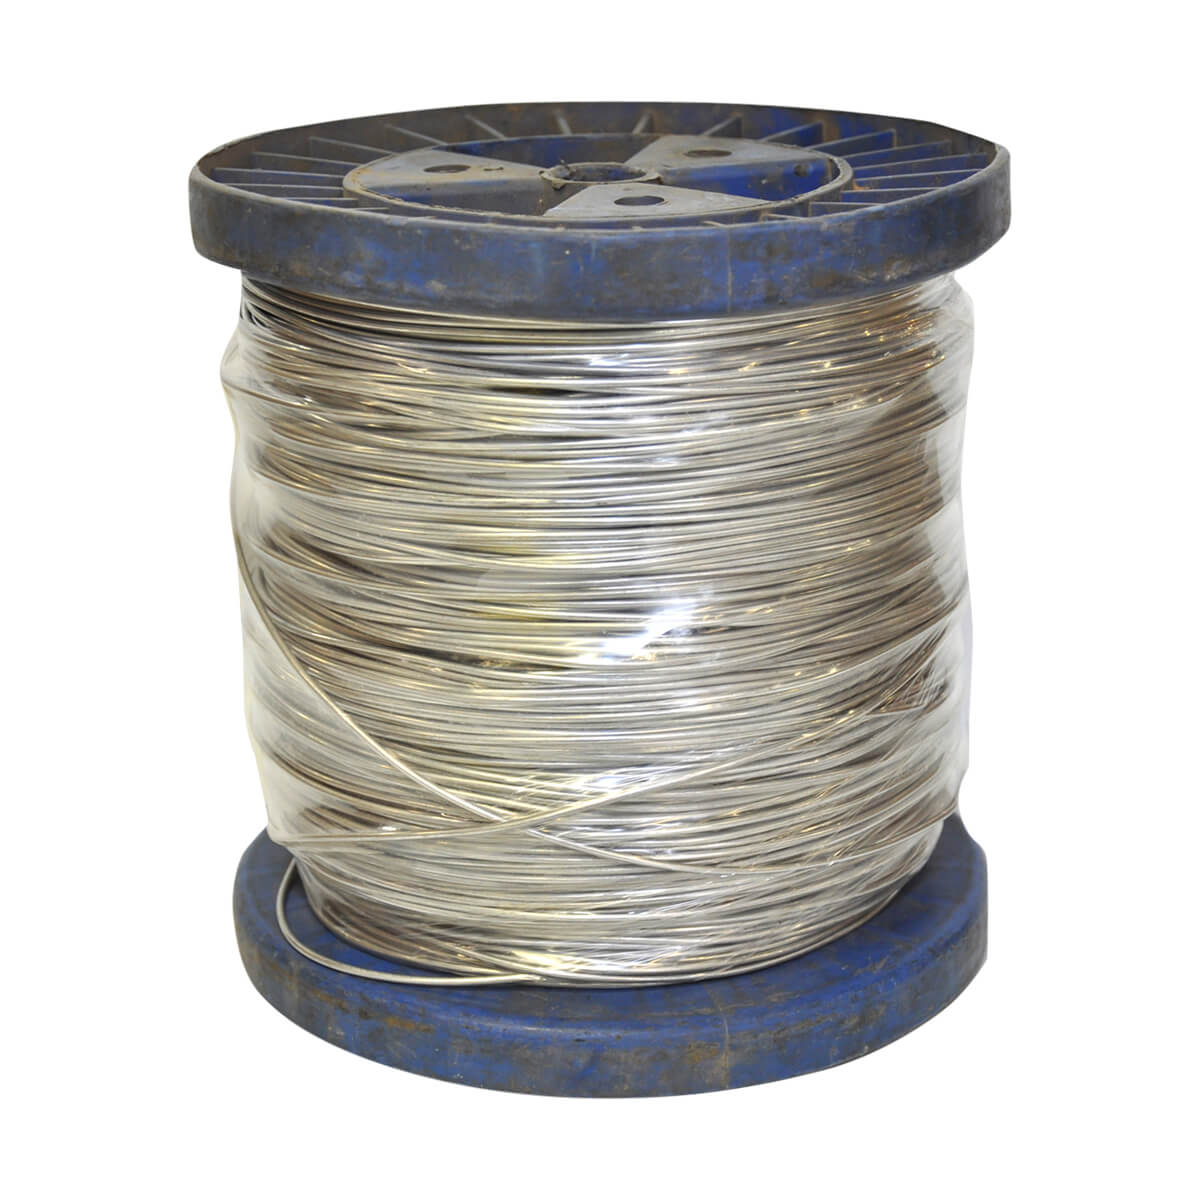 14 GA - 1/4 mile Electric Fence Wire